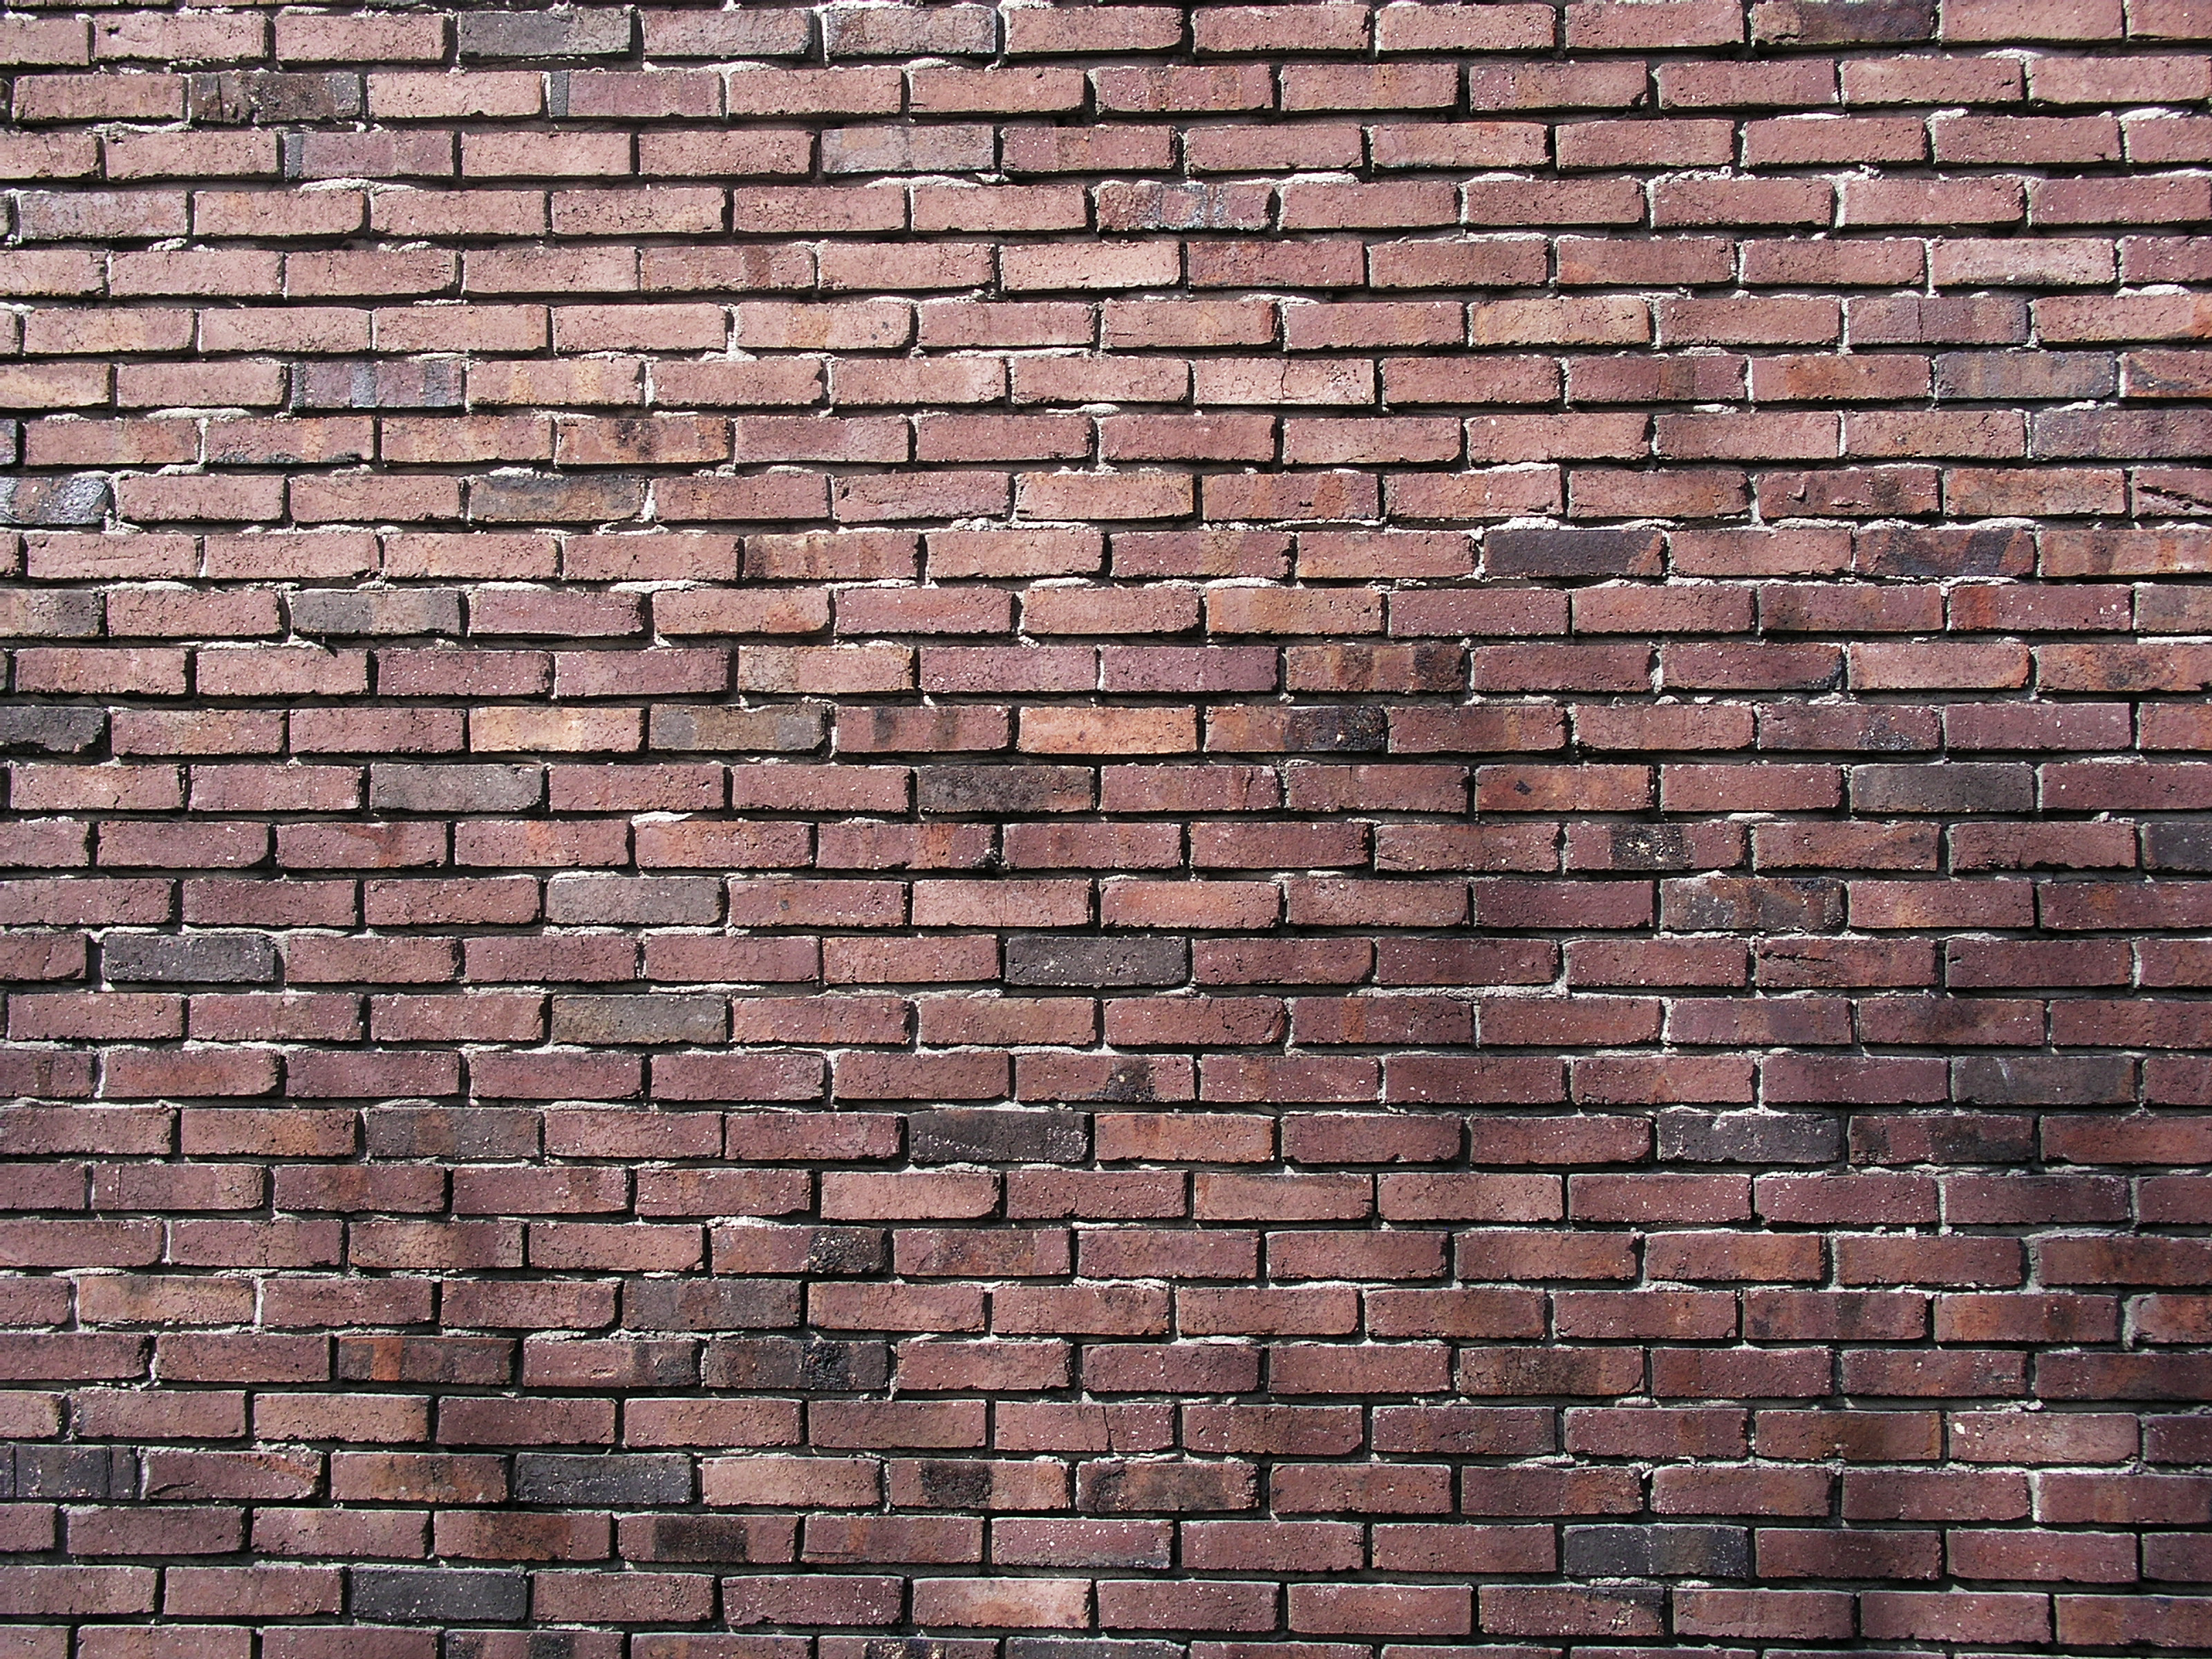 File soderledskyrkan brick wikimedia commons for Walls with pictures